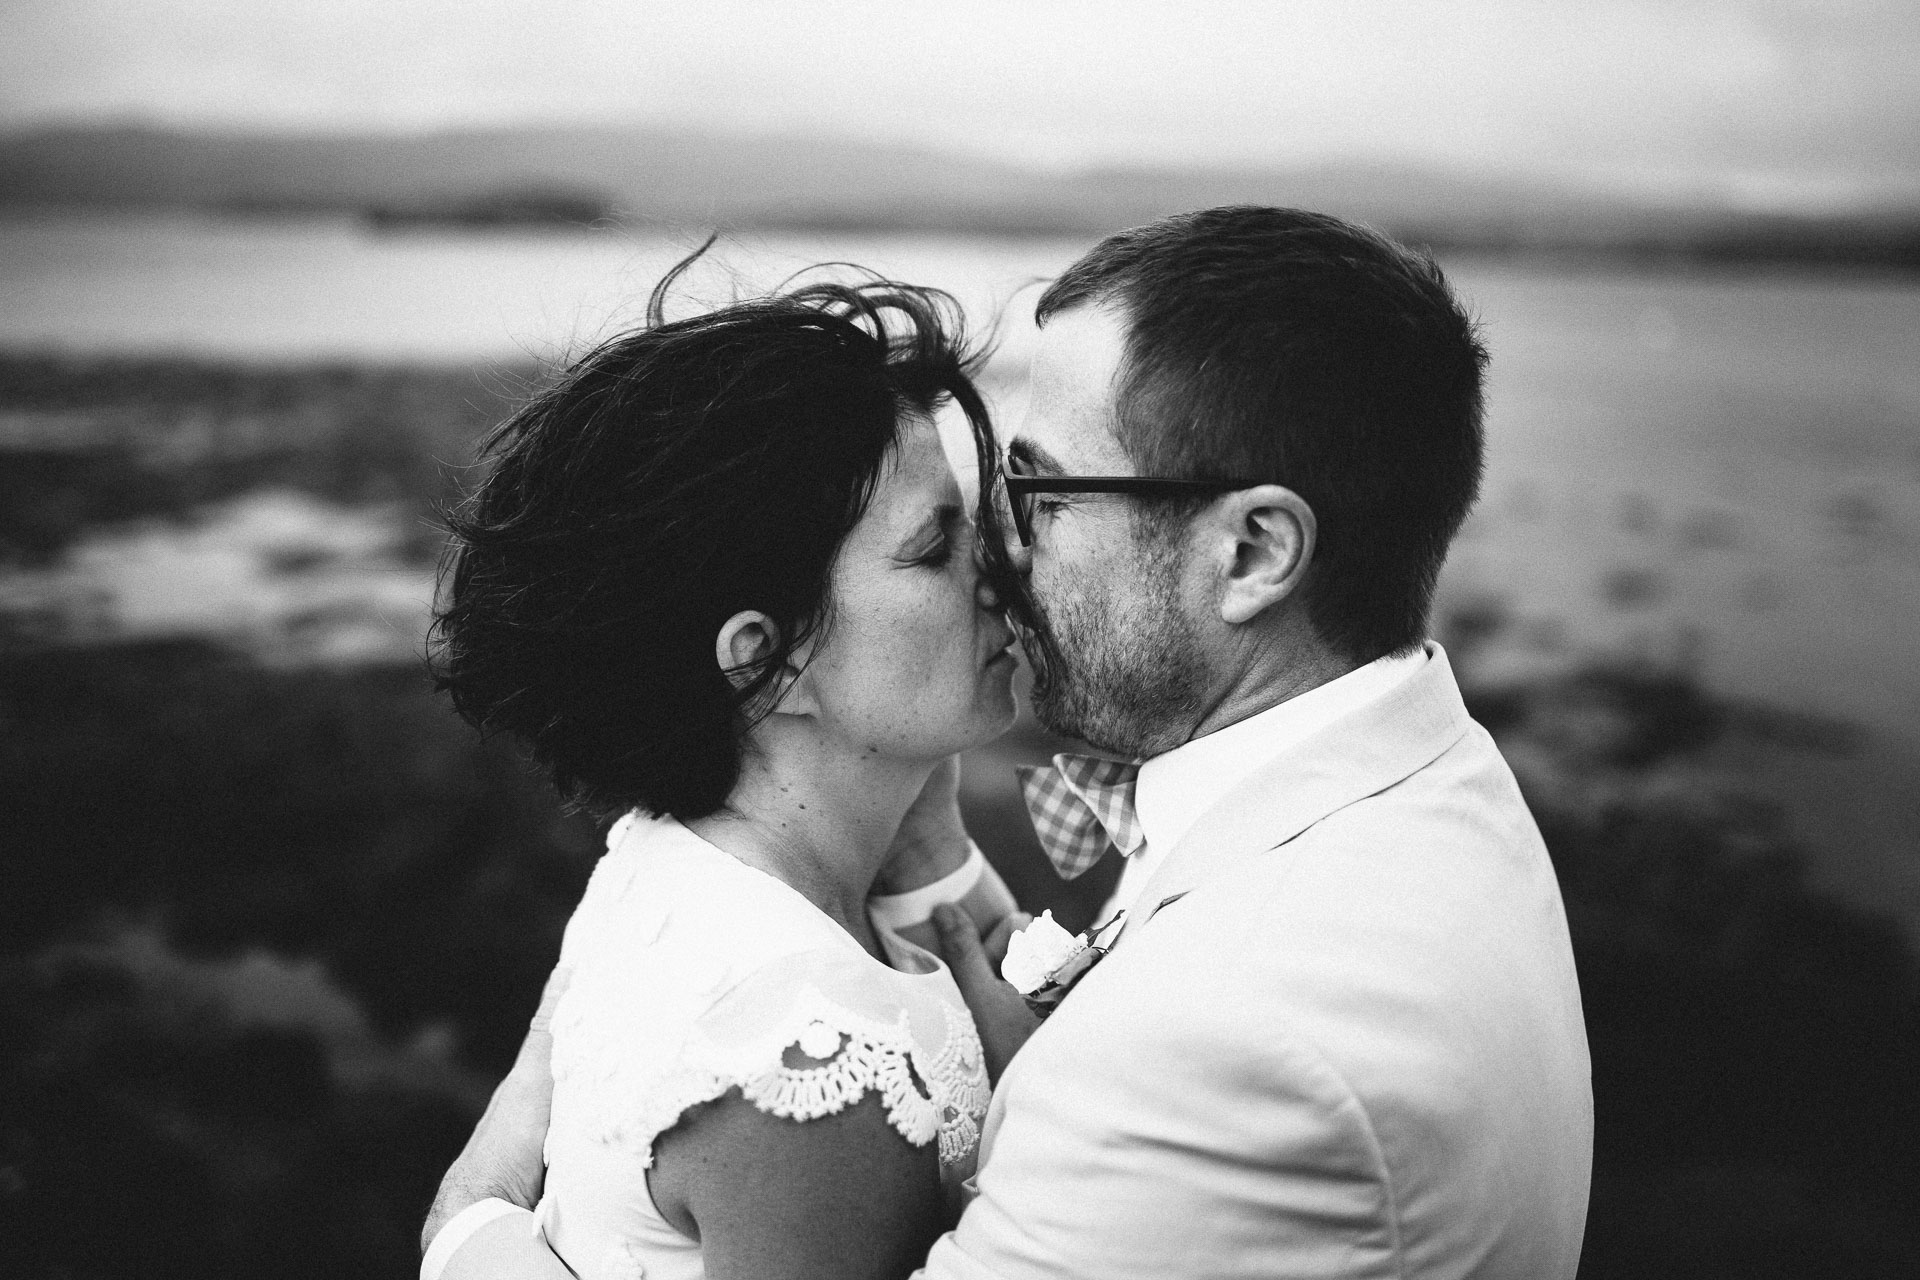 Megan_Matt_Elopement_IntimateWedding_Scotland_IsleOfSkye_JeanLaurentGaudy_117